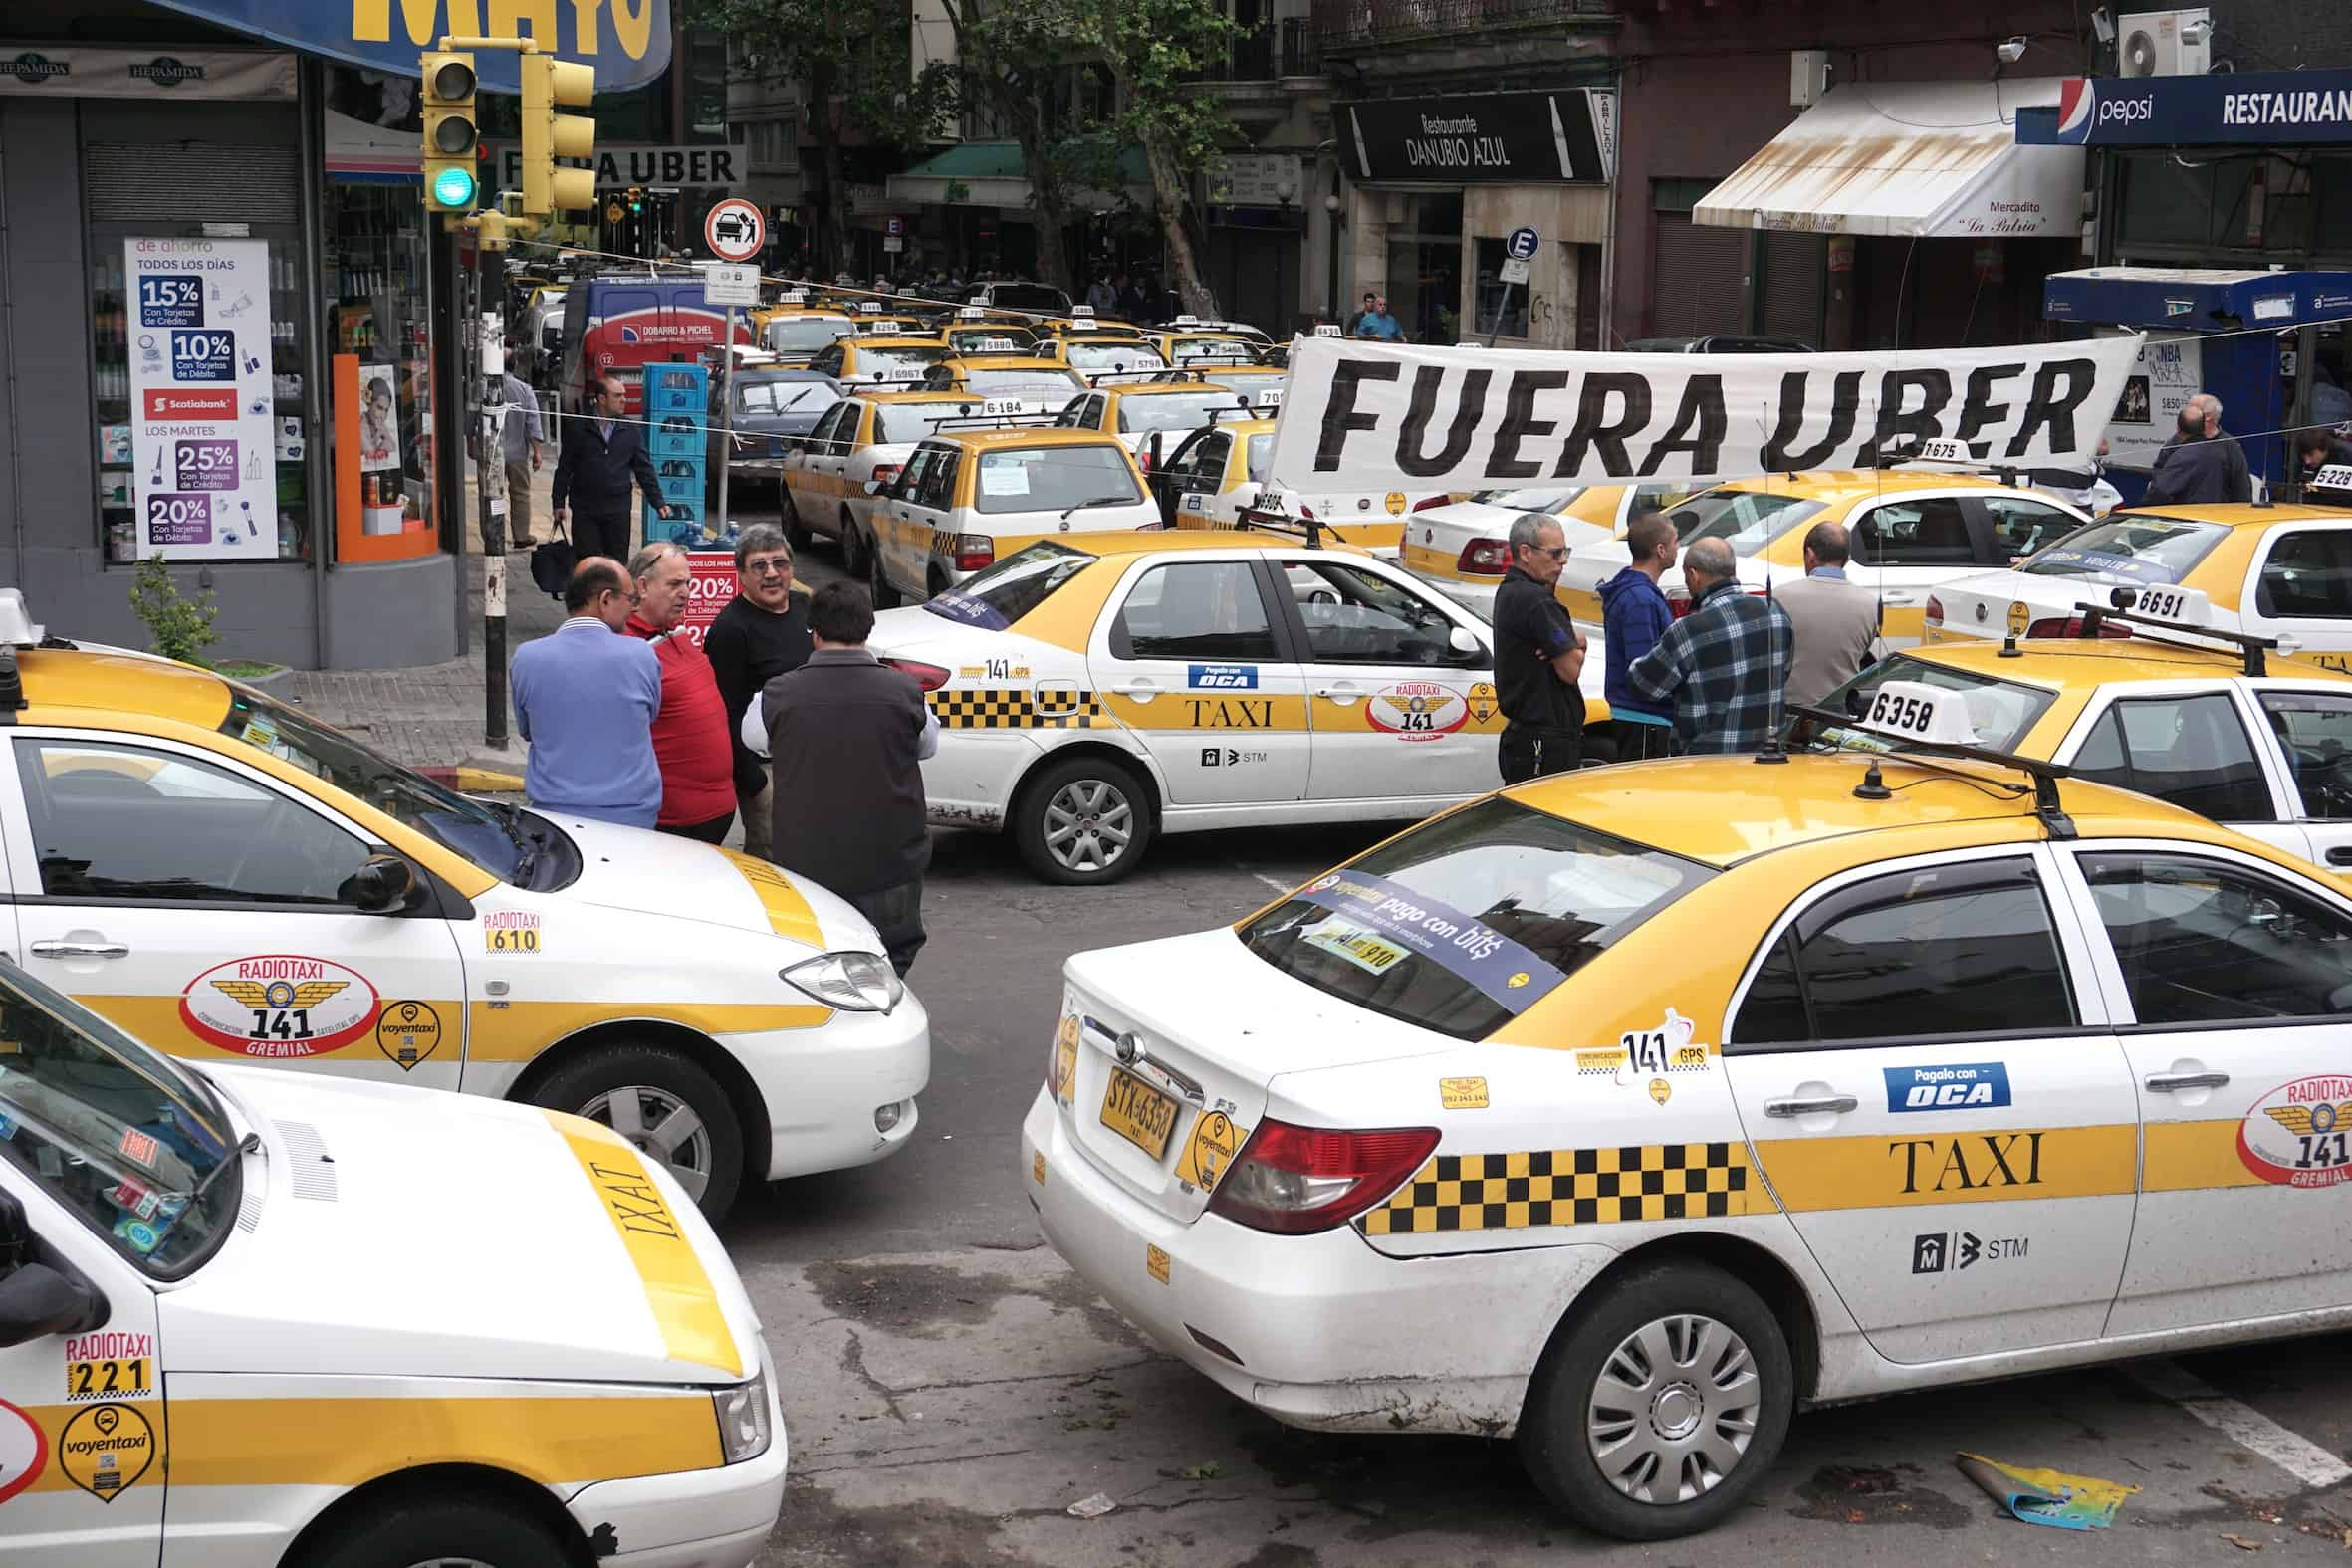 Taxi drivers in Uruguay protest Uber